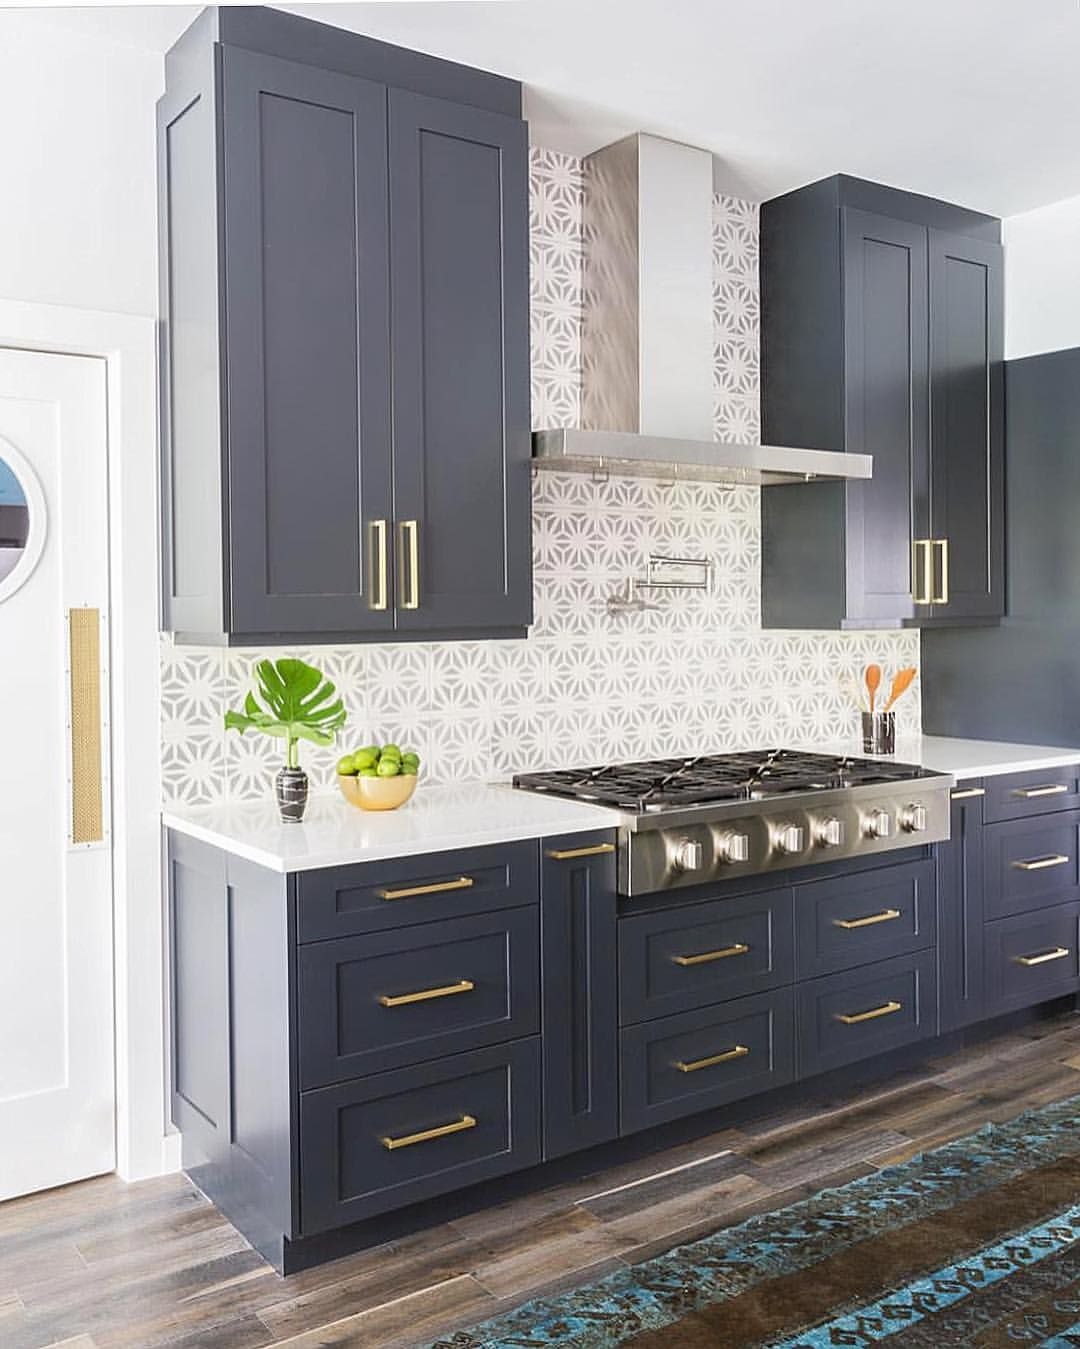 white kitchen cabinets blue walls navy blue cabinets textiles kitchen kitchen 1793